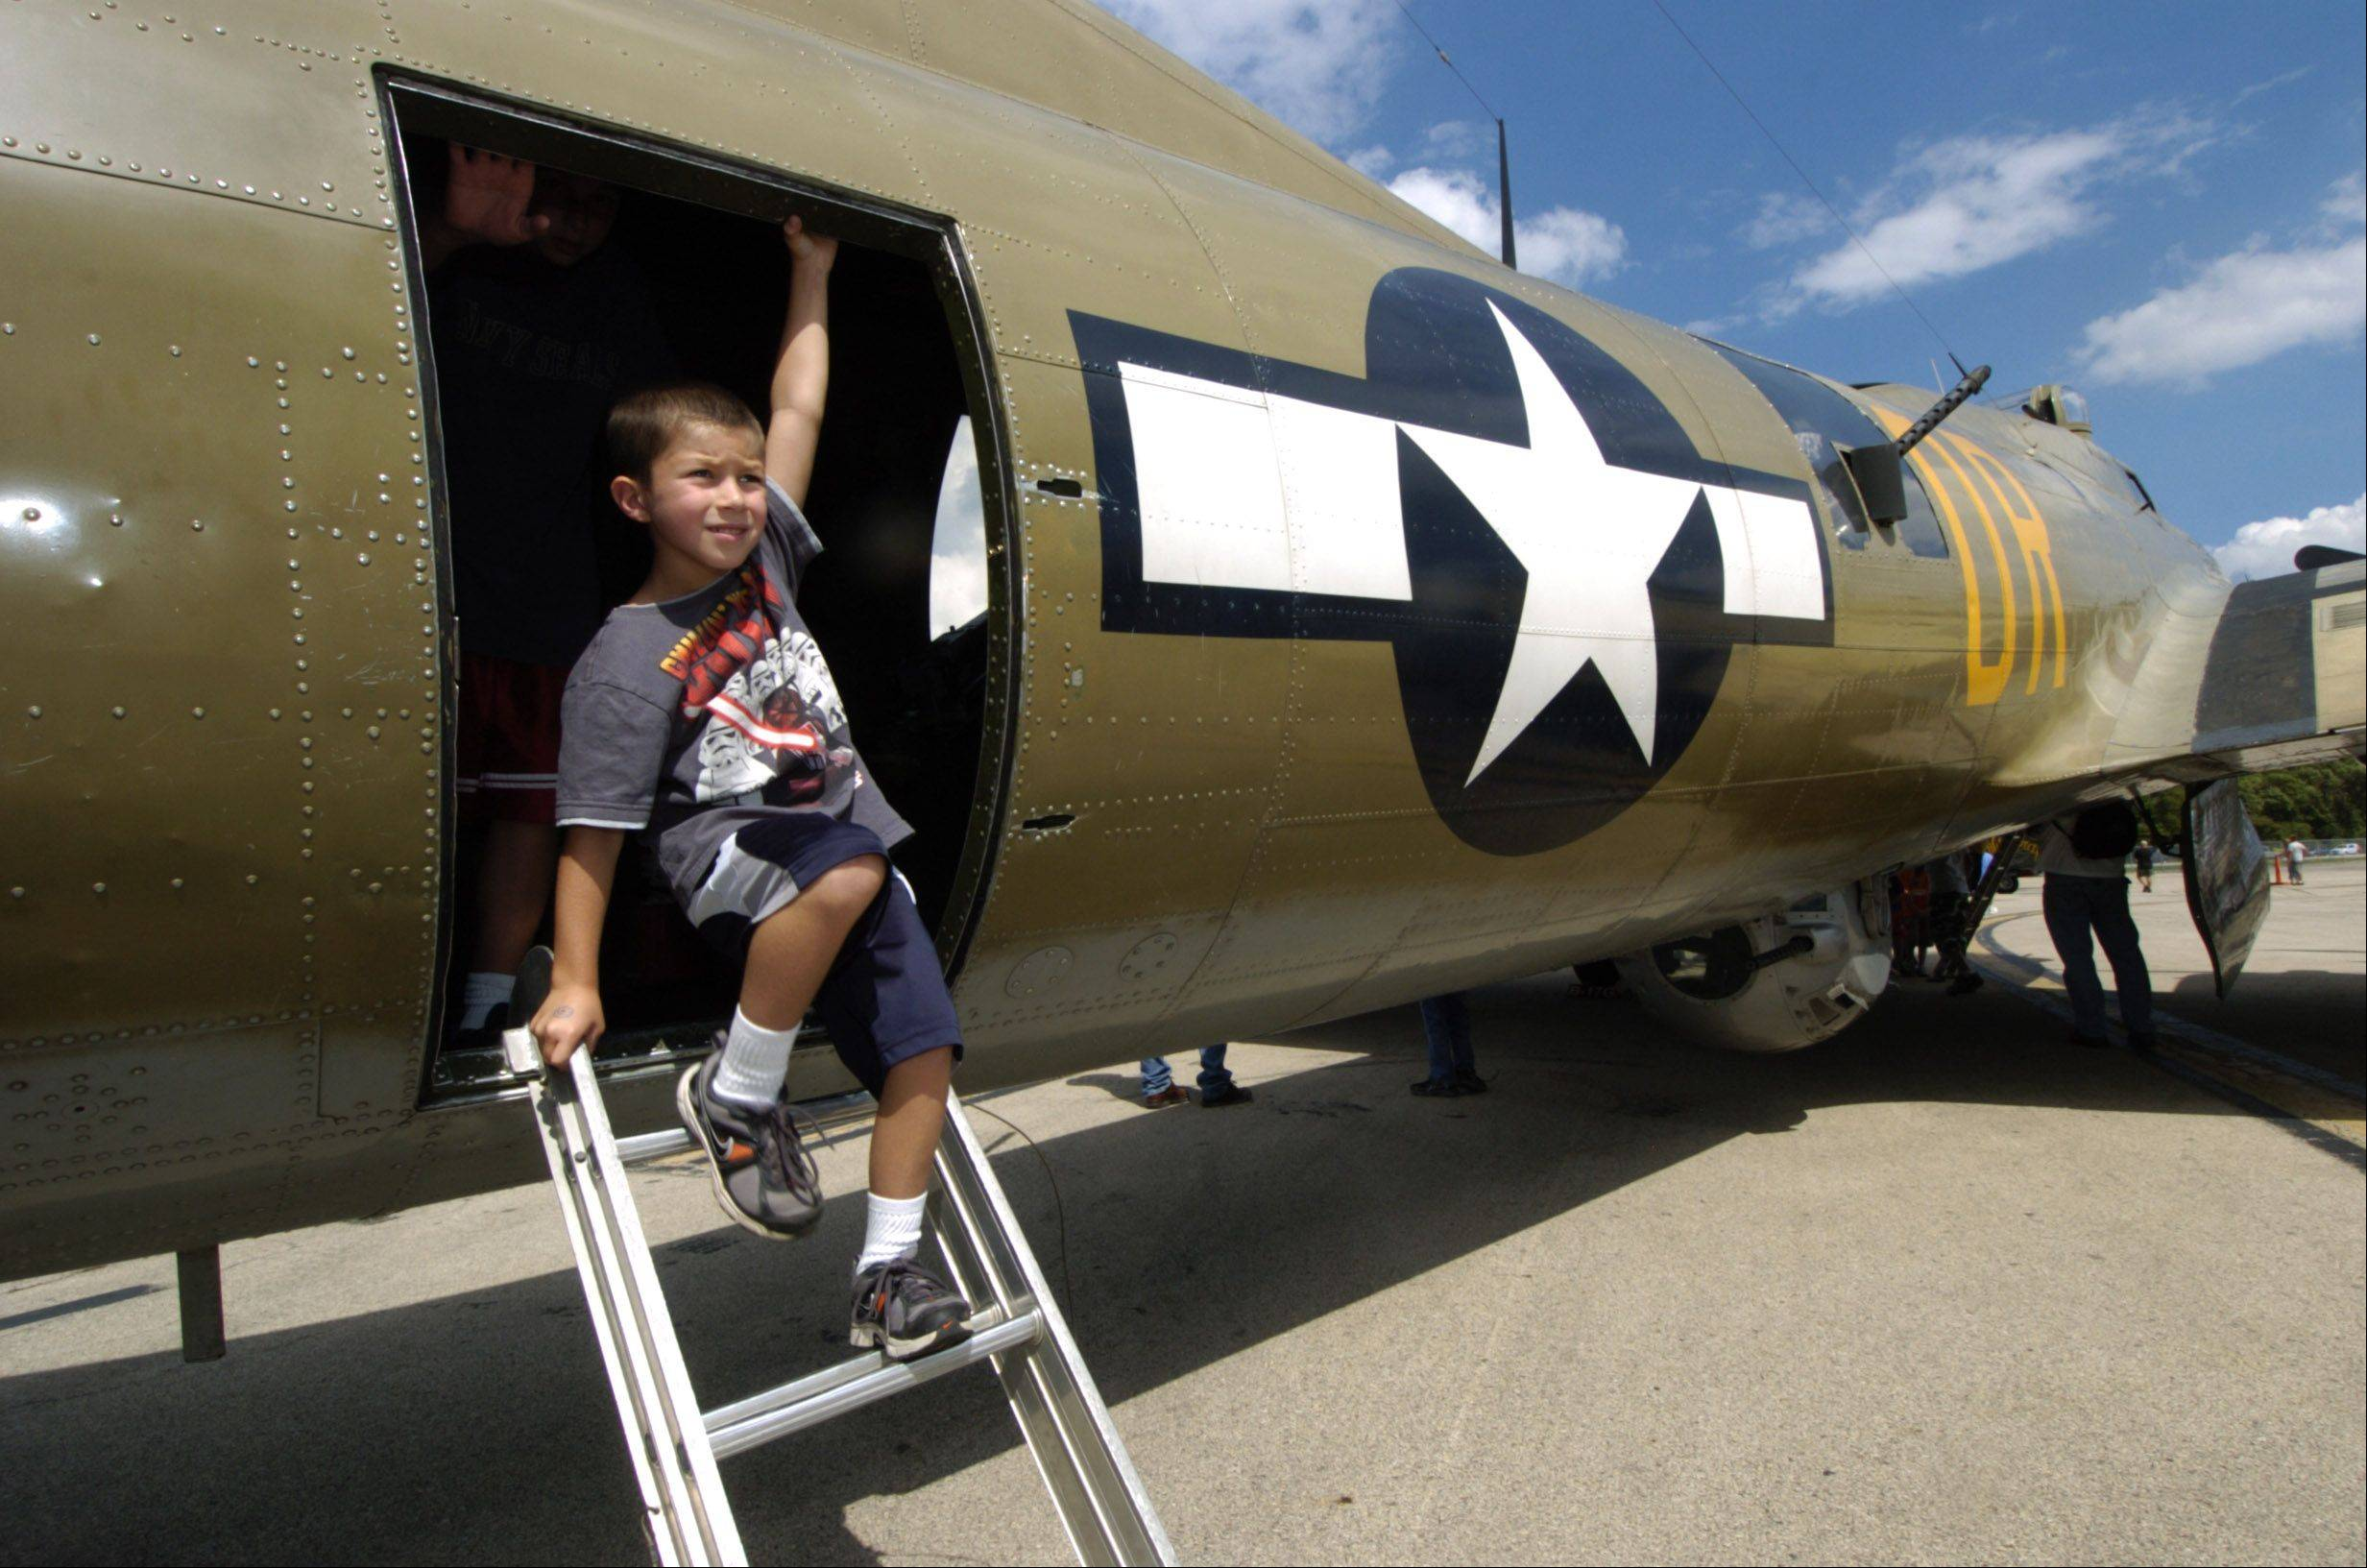 Anthony Michelotti, 6, of Palatine exits a B-17, one of three World War II planes on display Friday for the Wings of Freedom stop at Chicago Executive Airport in Wheeling. The event is open to the public from 9 a.m. to 5 p.m. today and Sunday and 9 a.m. to noon Monday.